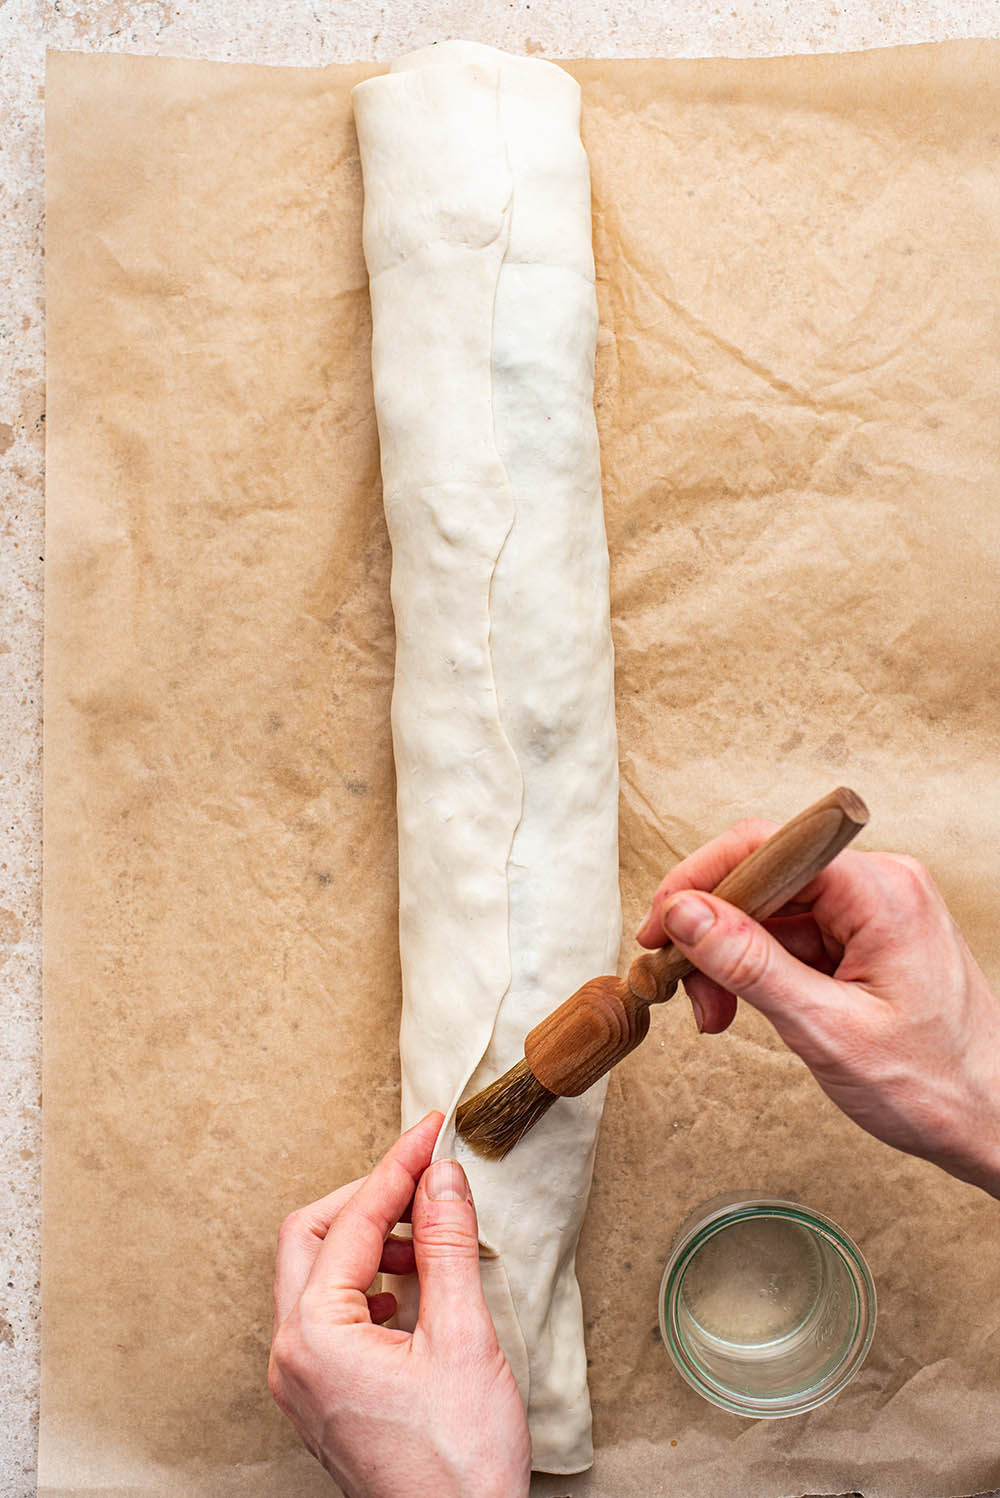 Brushing the seam with water to seal the pastry.